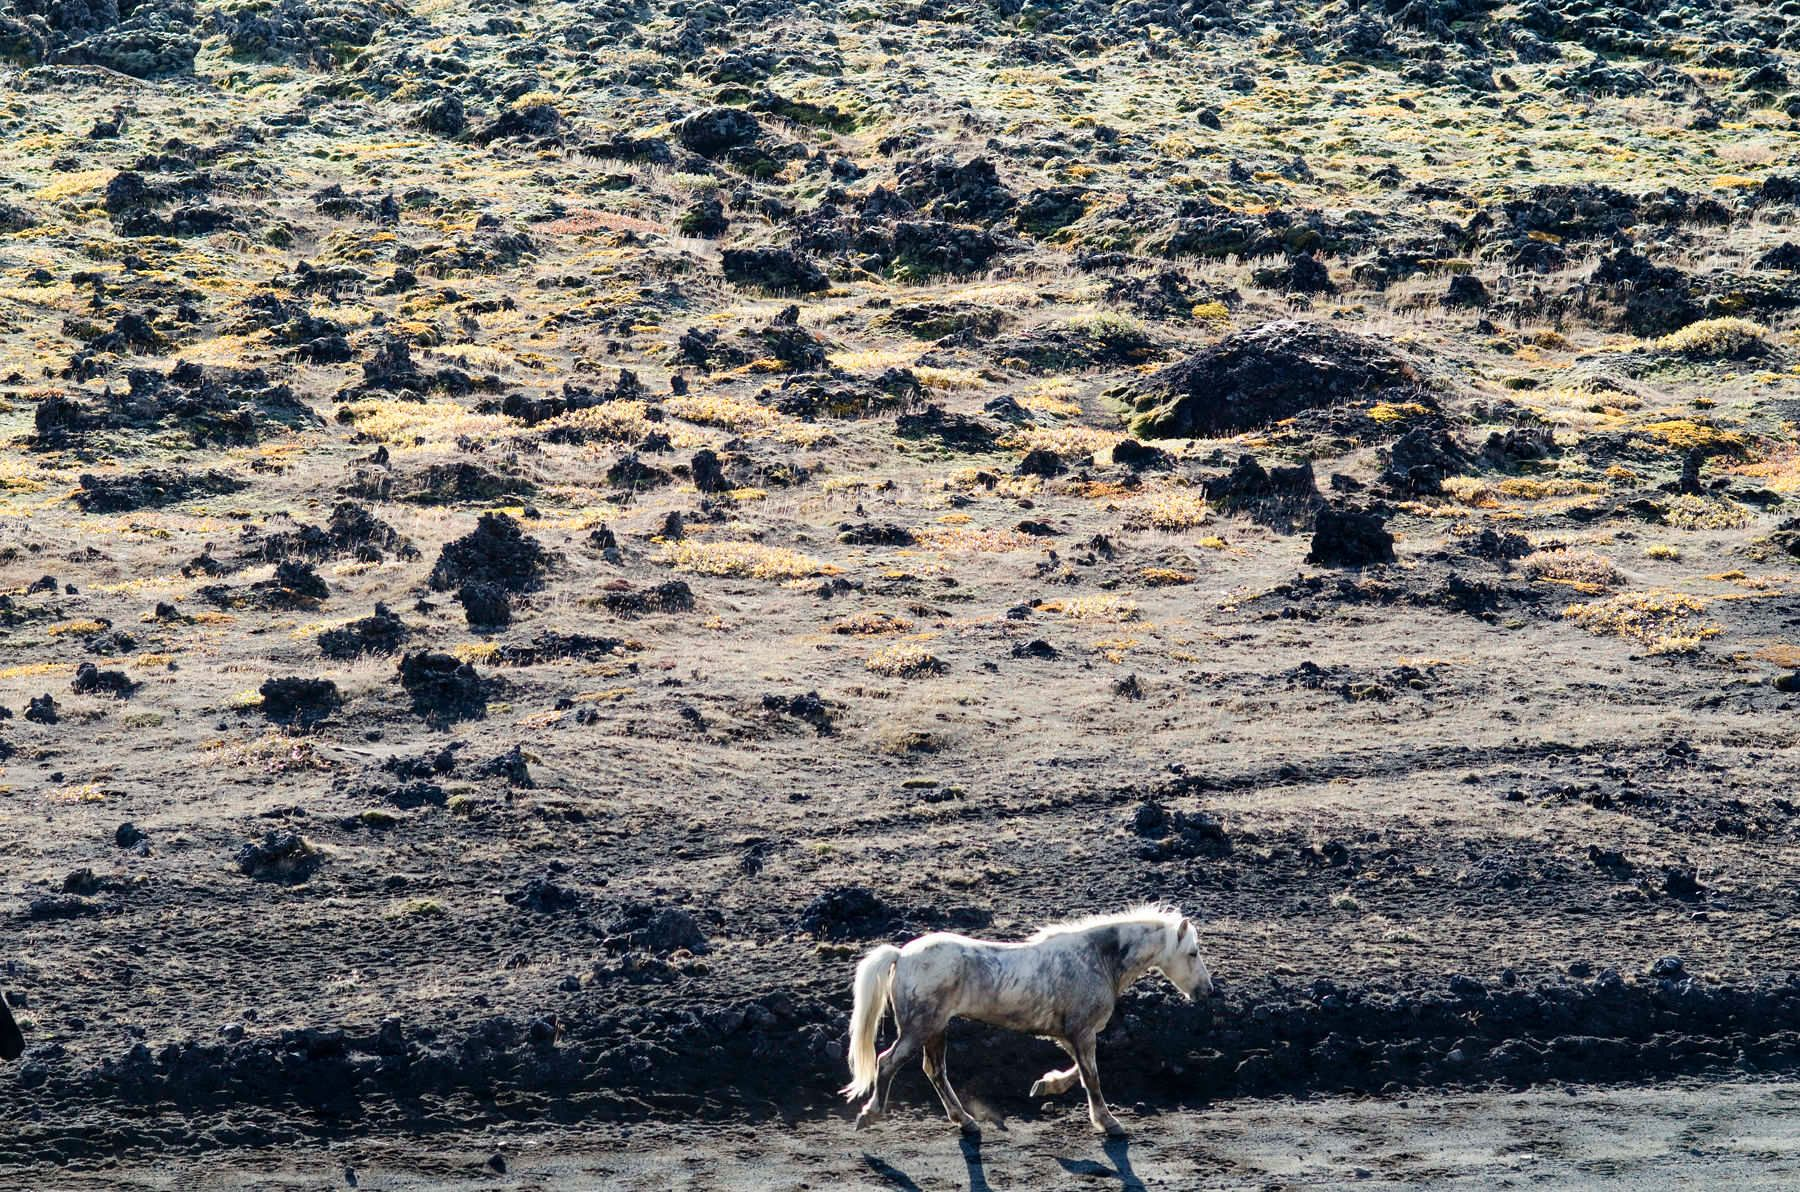 One of the horses being herded through the lava fields near Landmannalaugar in southern Iceland on September 21, 2011.